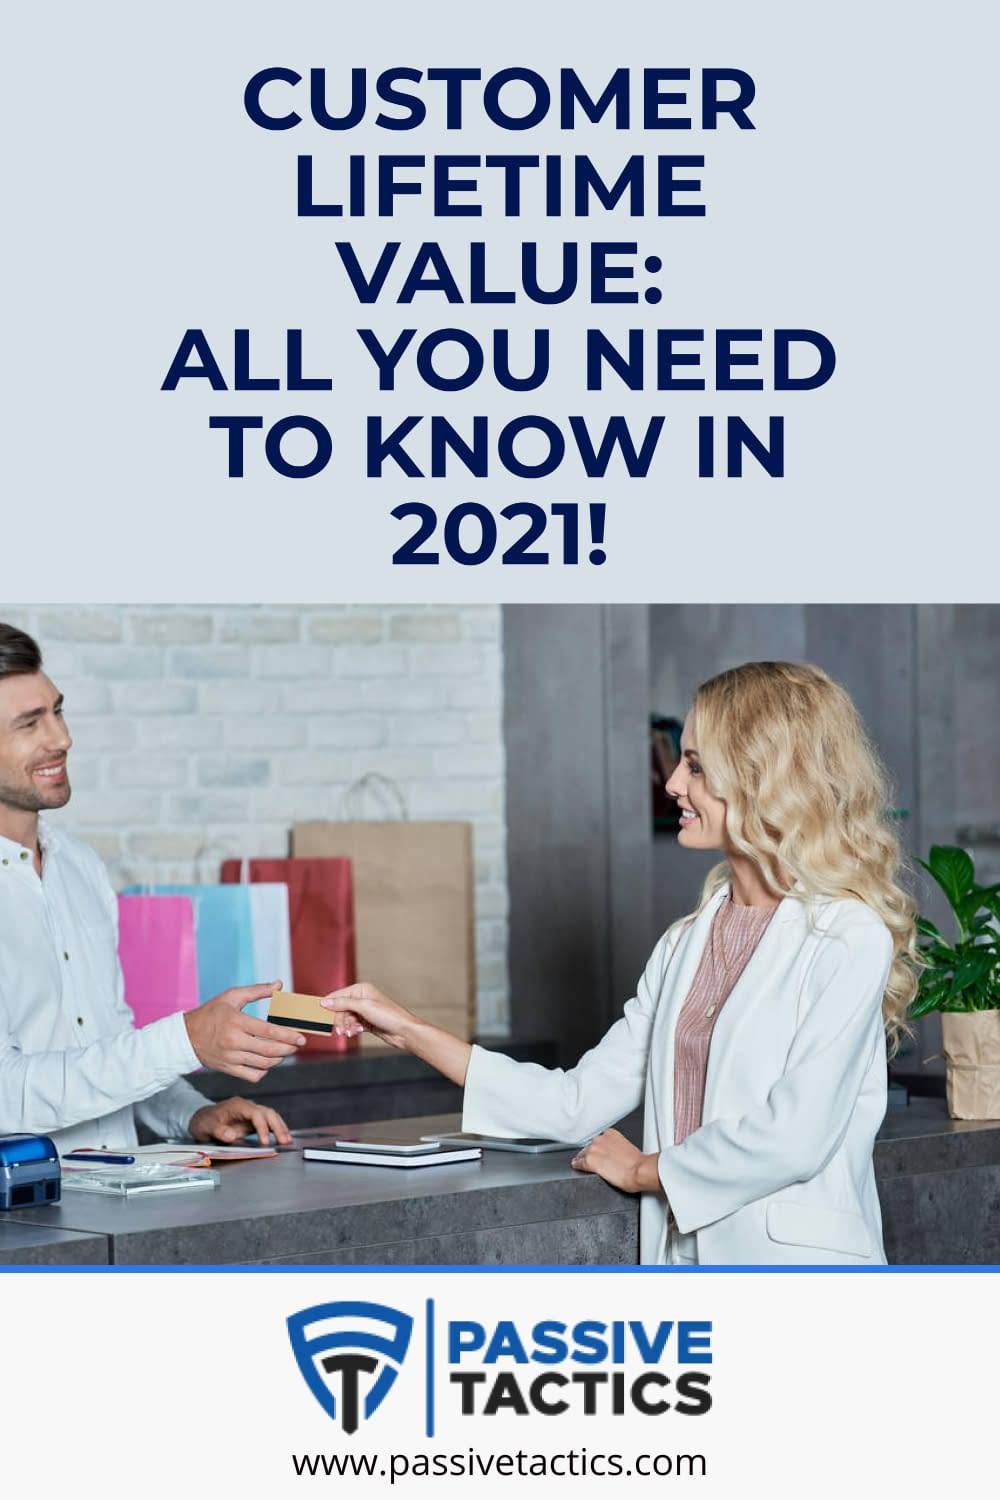 Customer Lifetime Value: All You Need To Know In 2021!